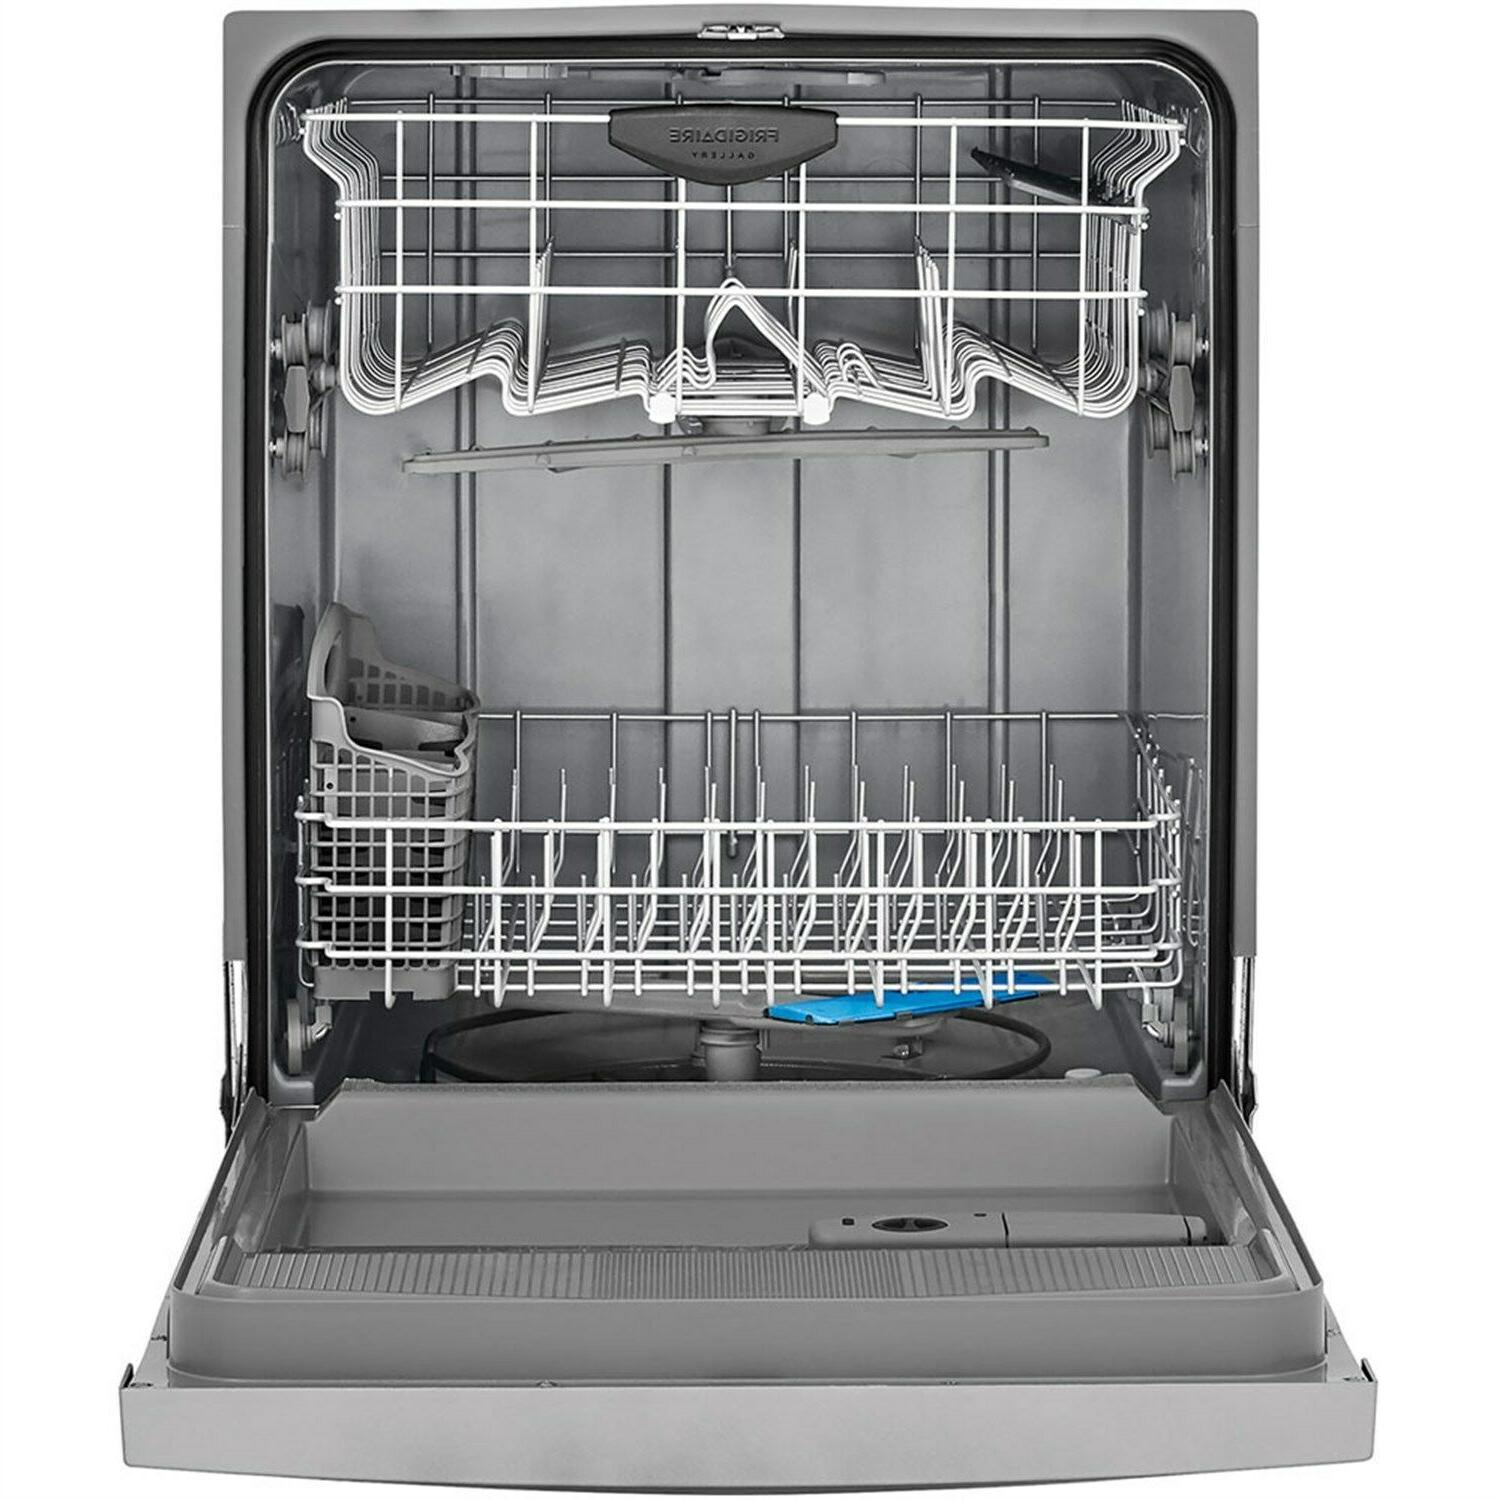 Frigidaire Stainless Built In Dishwasher, Cycles, 54